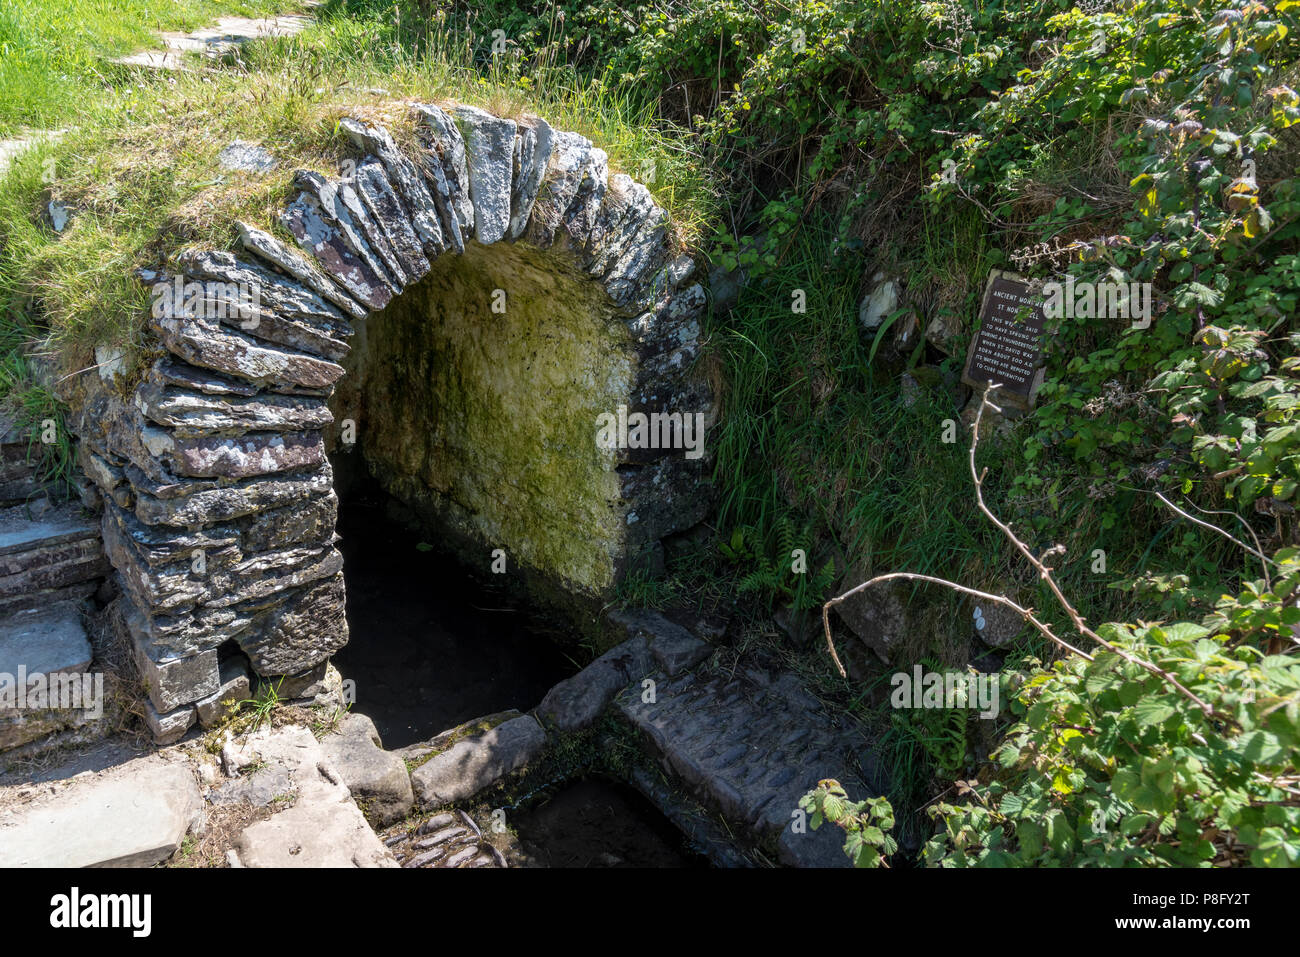 St. Non's Well, St. Non's Bay near St Davids, Wales - Stock Image